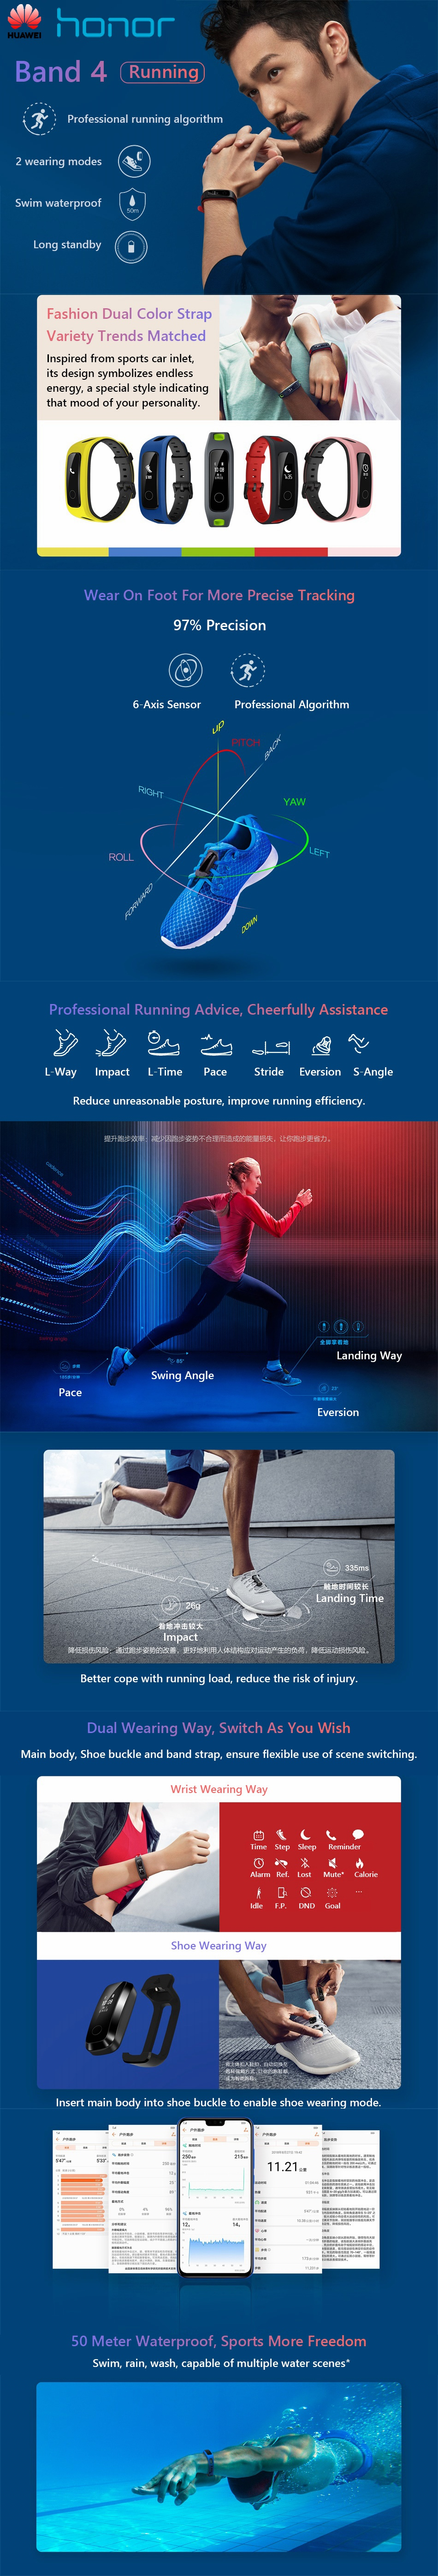 Huawei Honor Band 4 Running Version Shoe-Buckle Land Impact Sleep Snap Monitor Long Standby Smart Watch Band